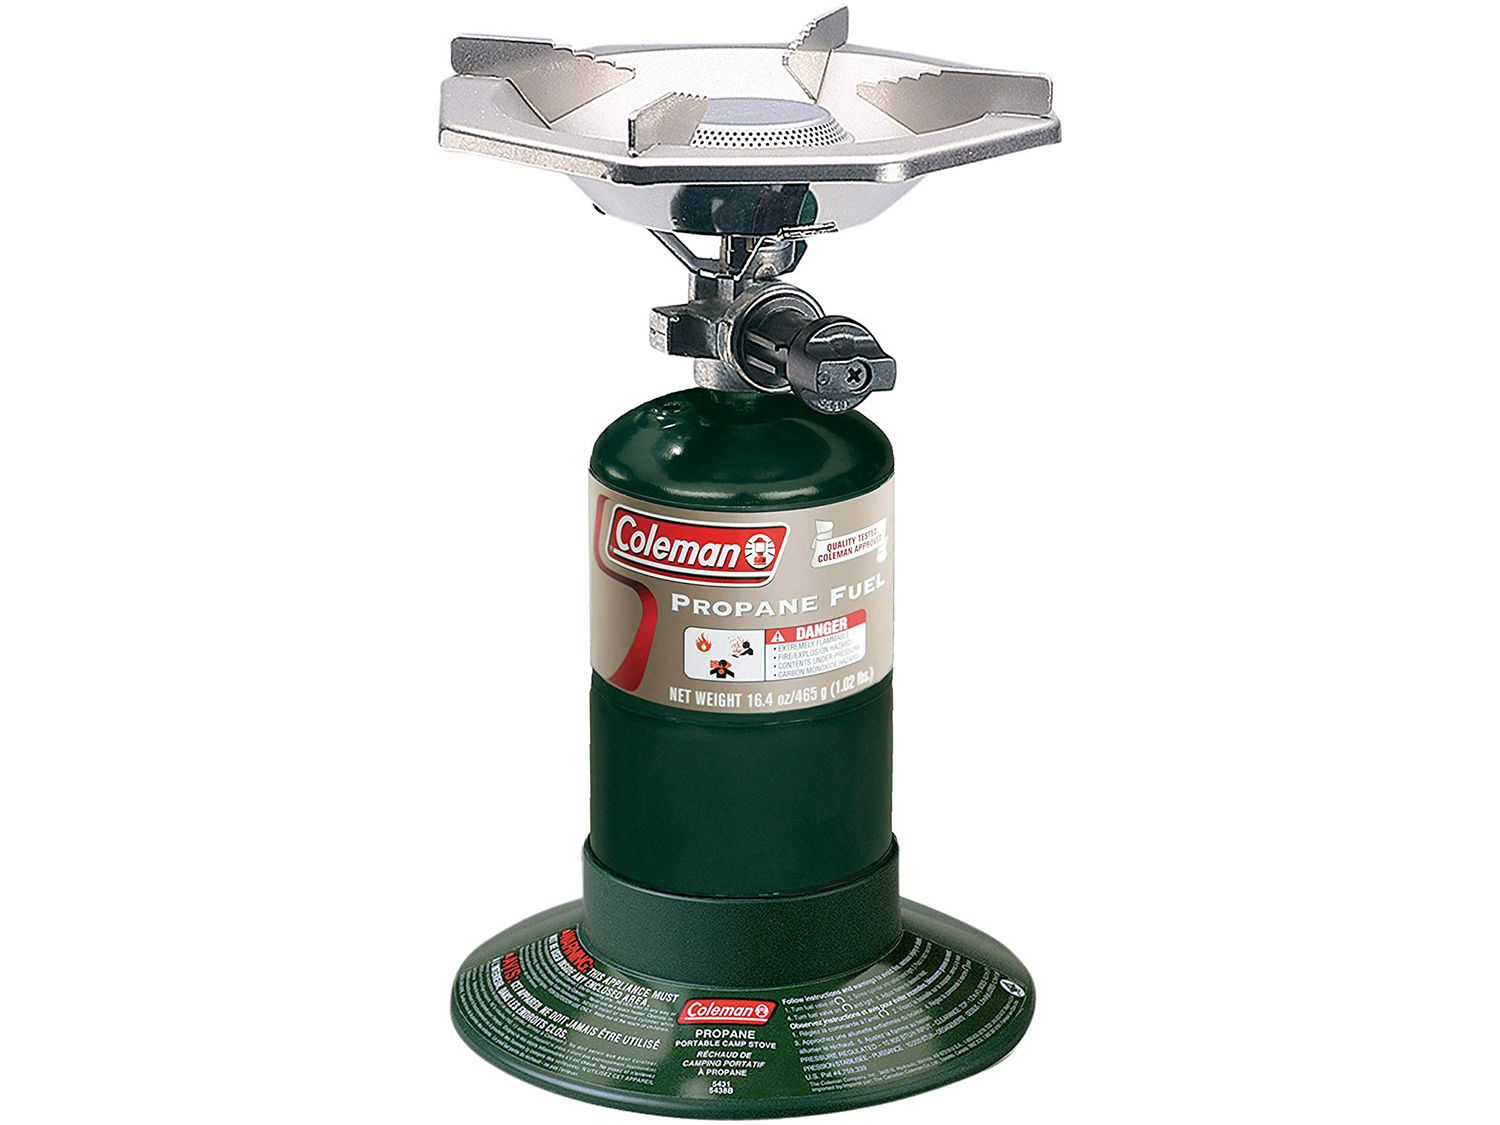 Producing up to 10,000 BTUs, this Coleman portable gas stove packs tightly and can run up to 2-1/2 hours on a 16.4-ounce propane bottle.